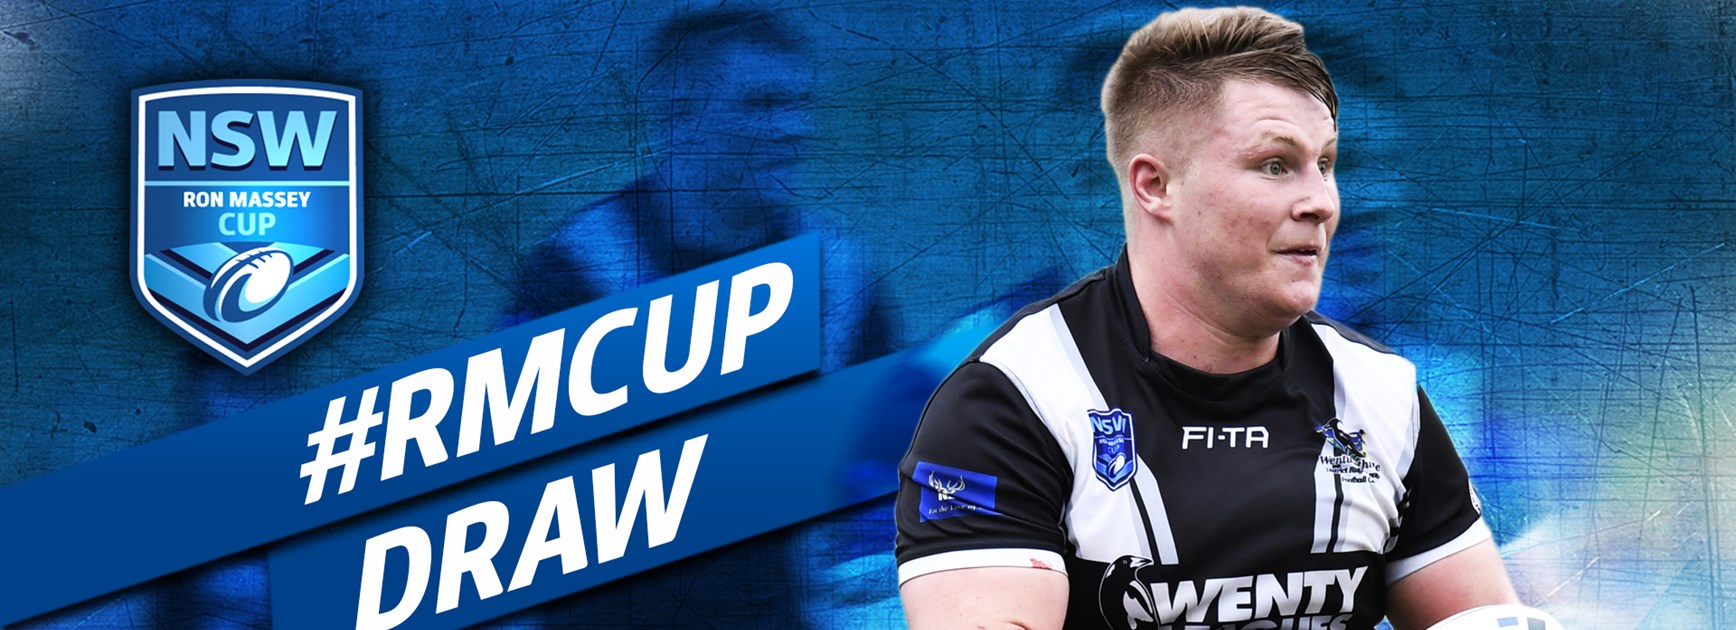 2018 DRAW | Ron Massey Cup